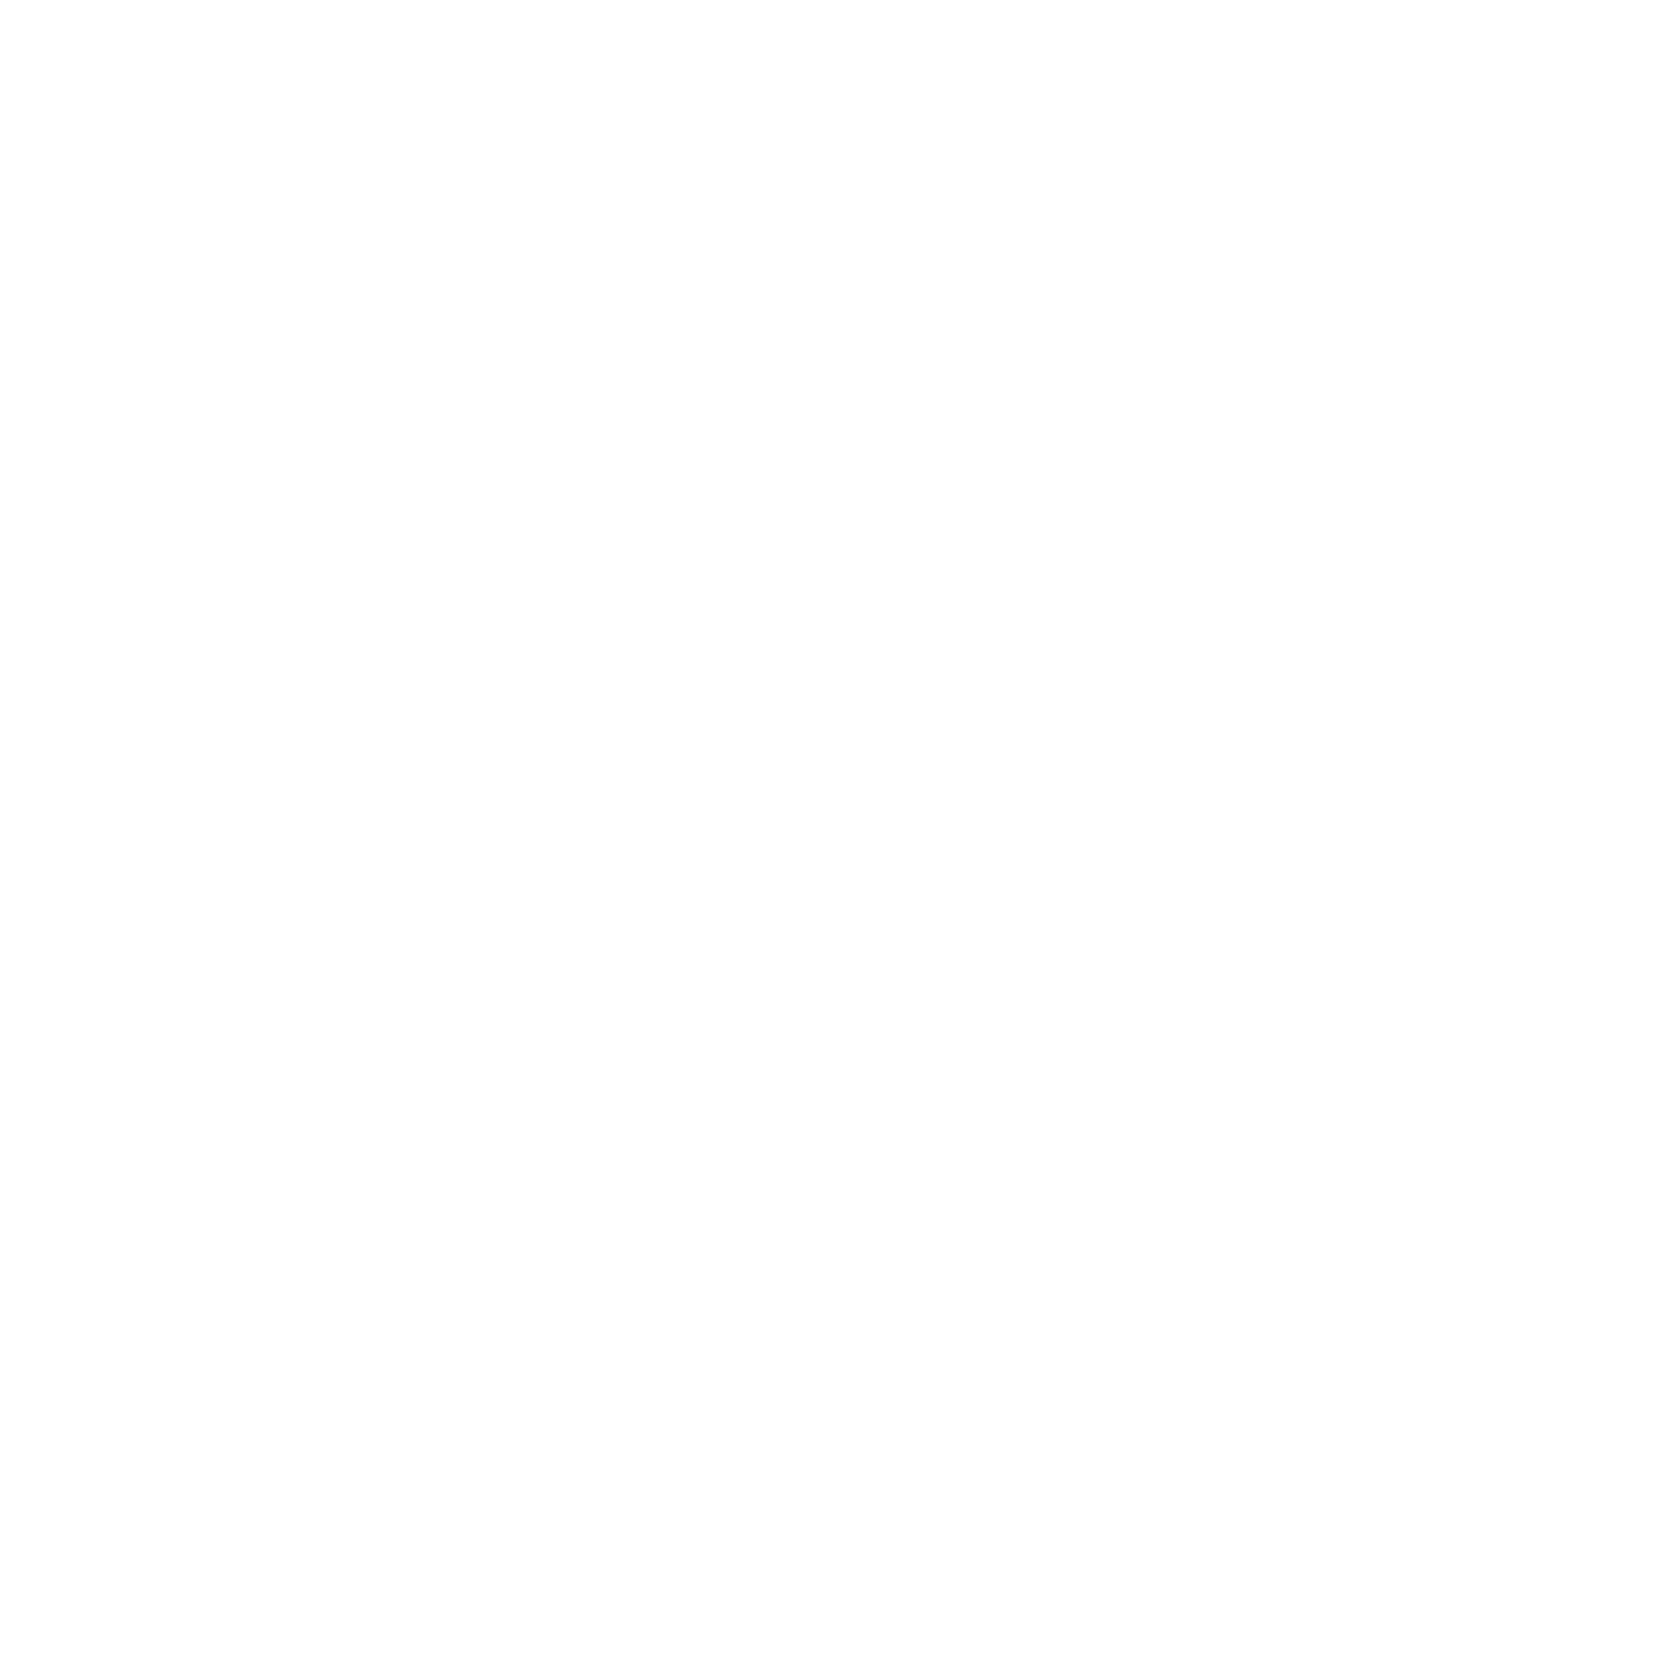 square footage icon